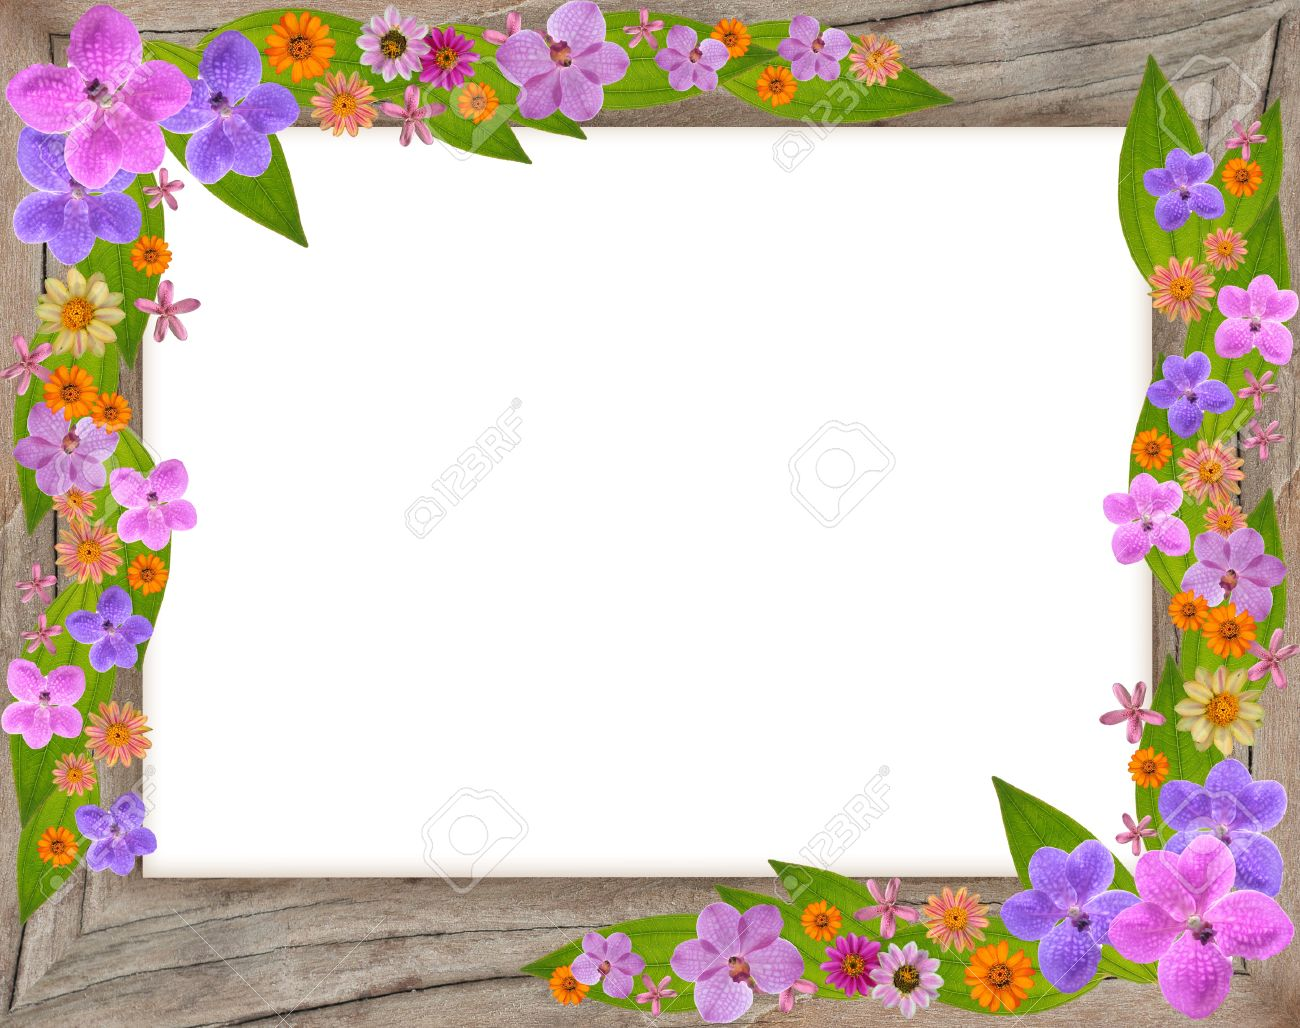 Floral Beautiful Flower Frame Isolated On White Background Stock